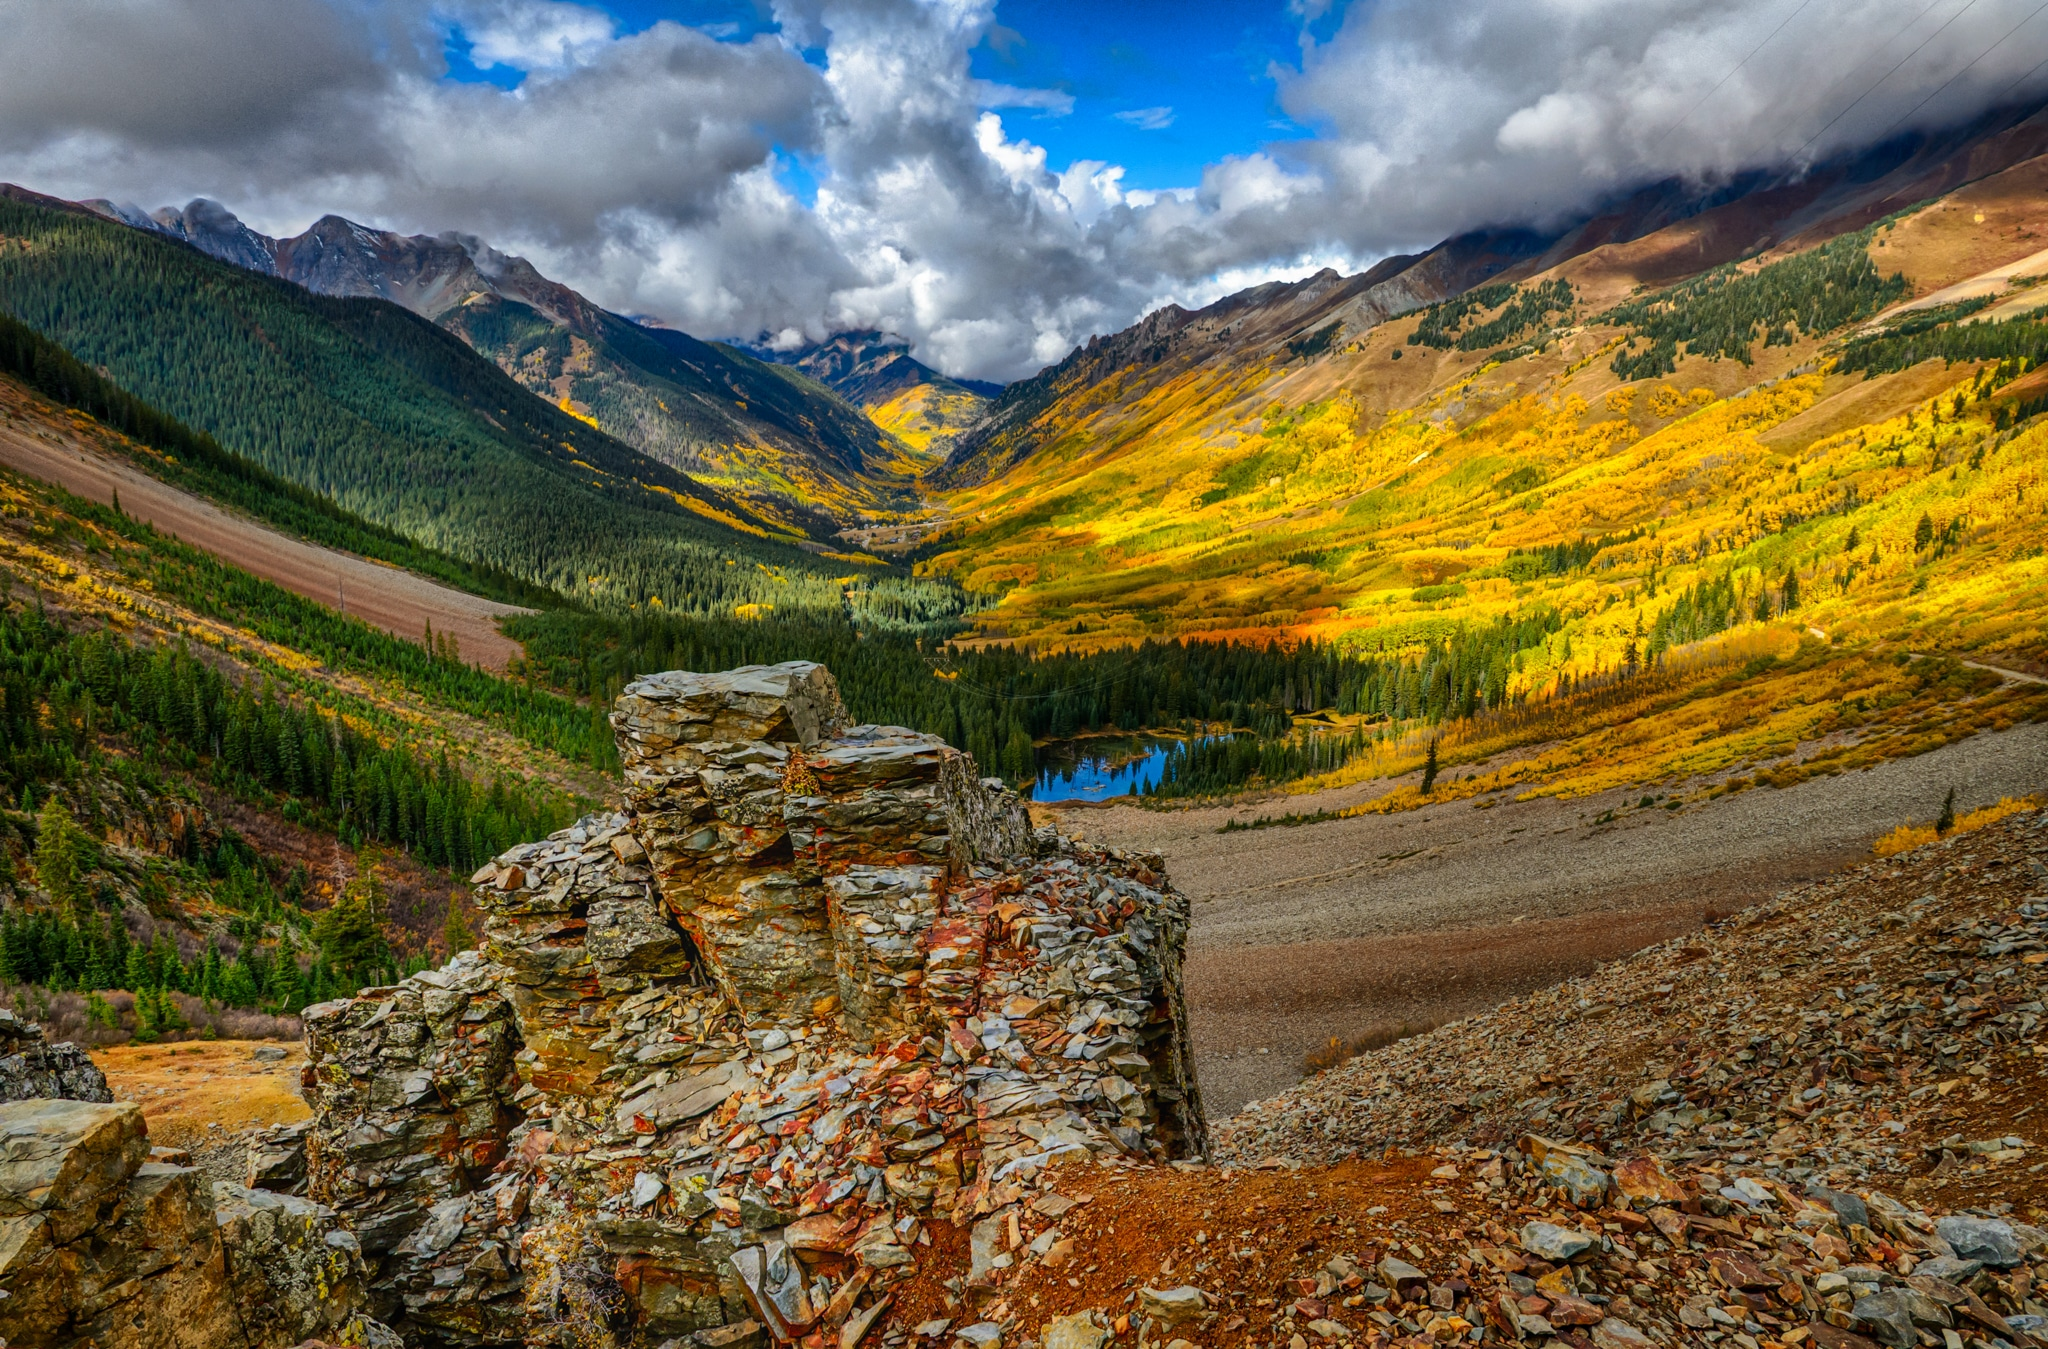 A view down the Howard Fork Valley to Ophir from high up Ophir Pass Road that runs between Highway 550 and Telluride, Colorado.